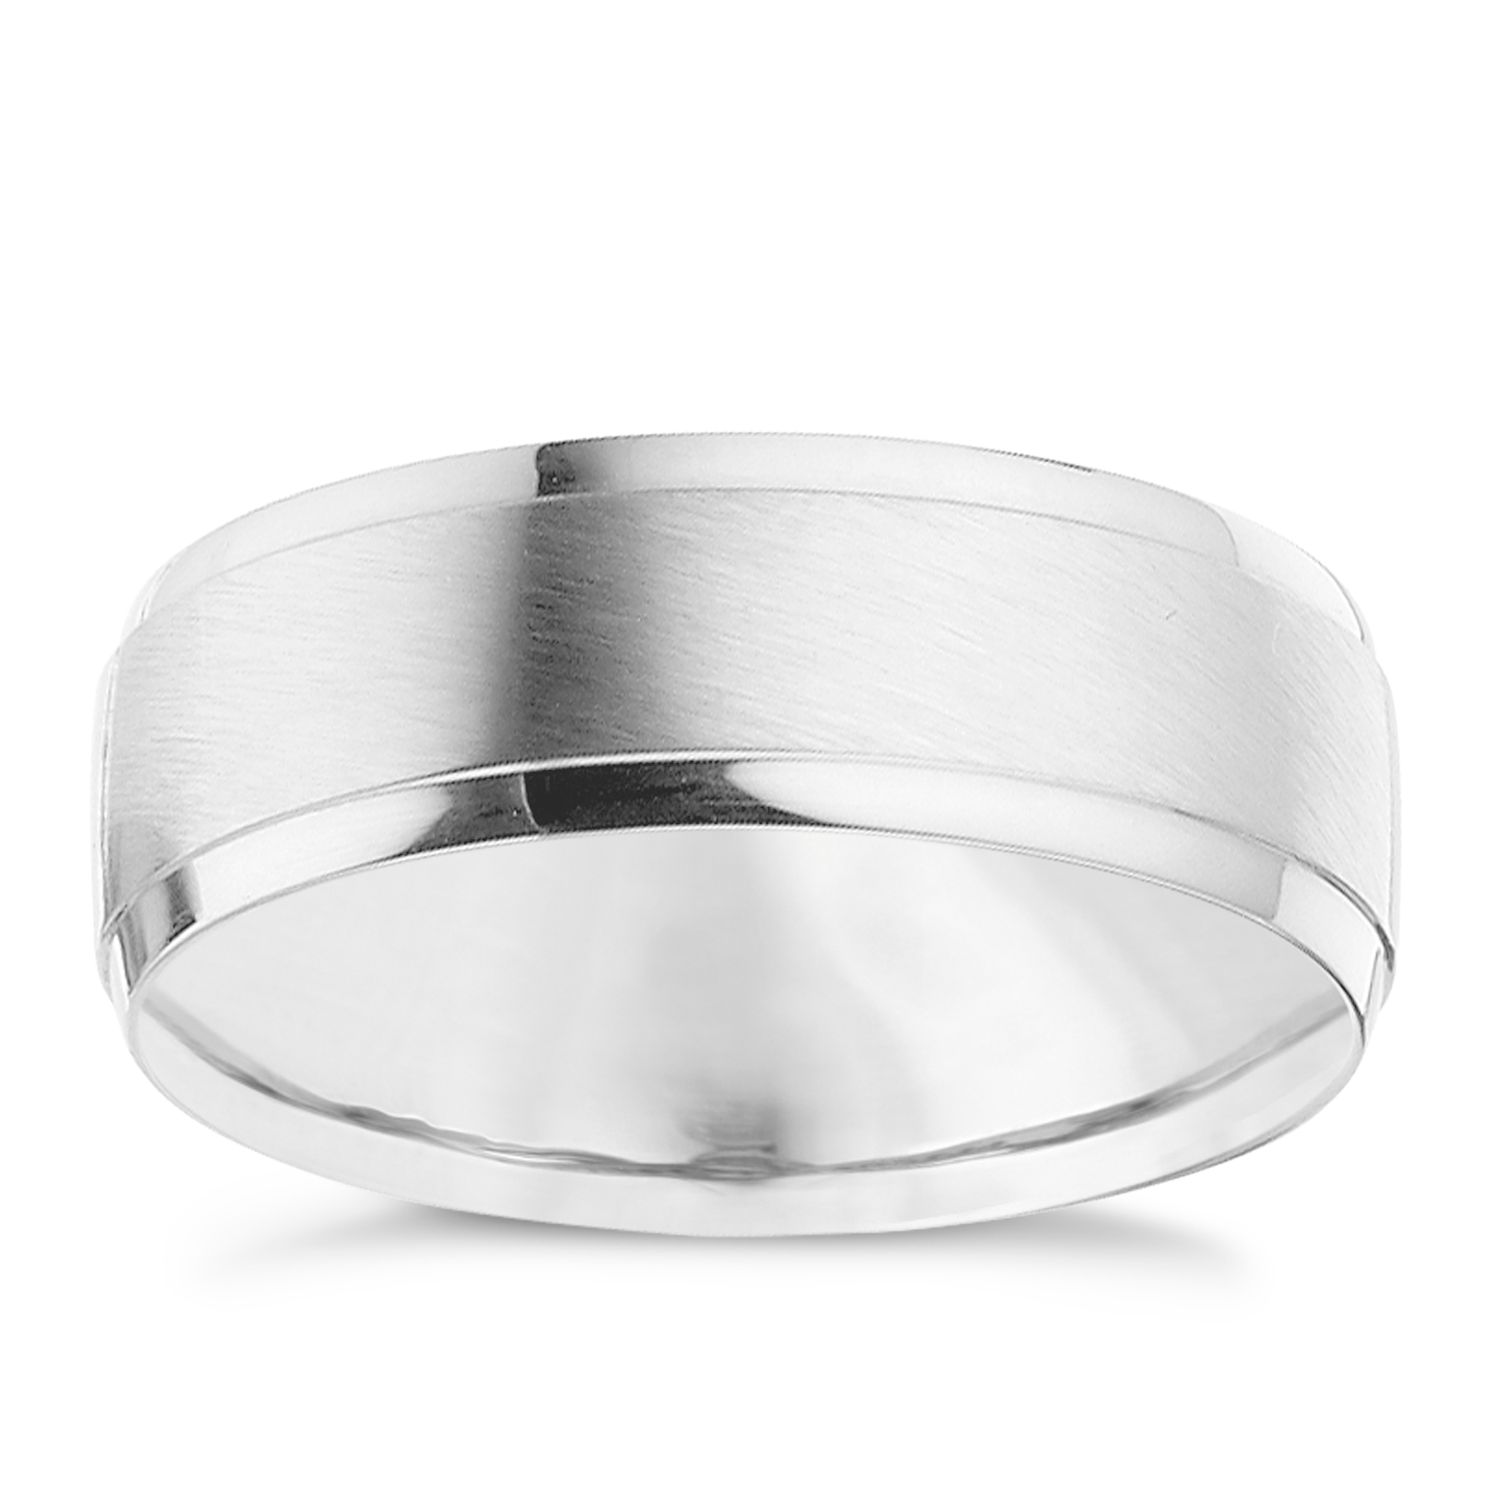 Palladium 950 7mm Matt & Polished Ring - Product number 8606765